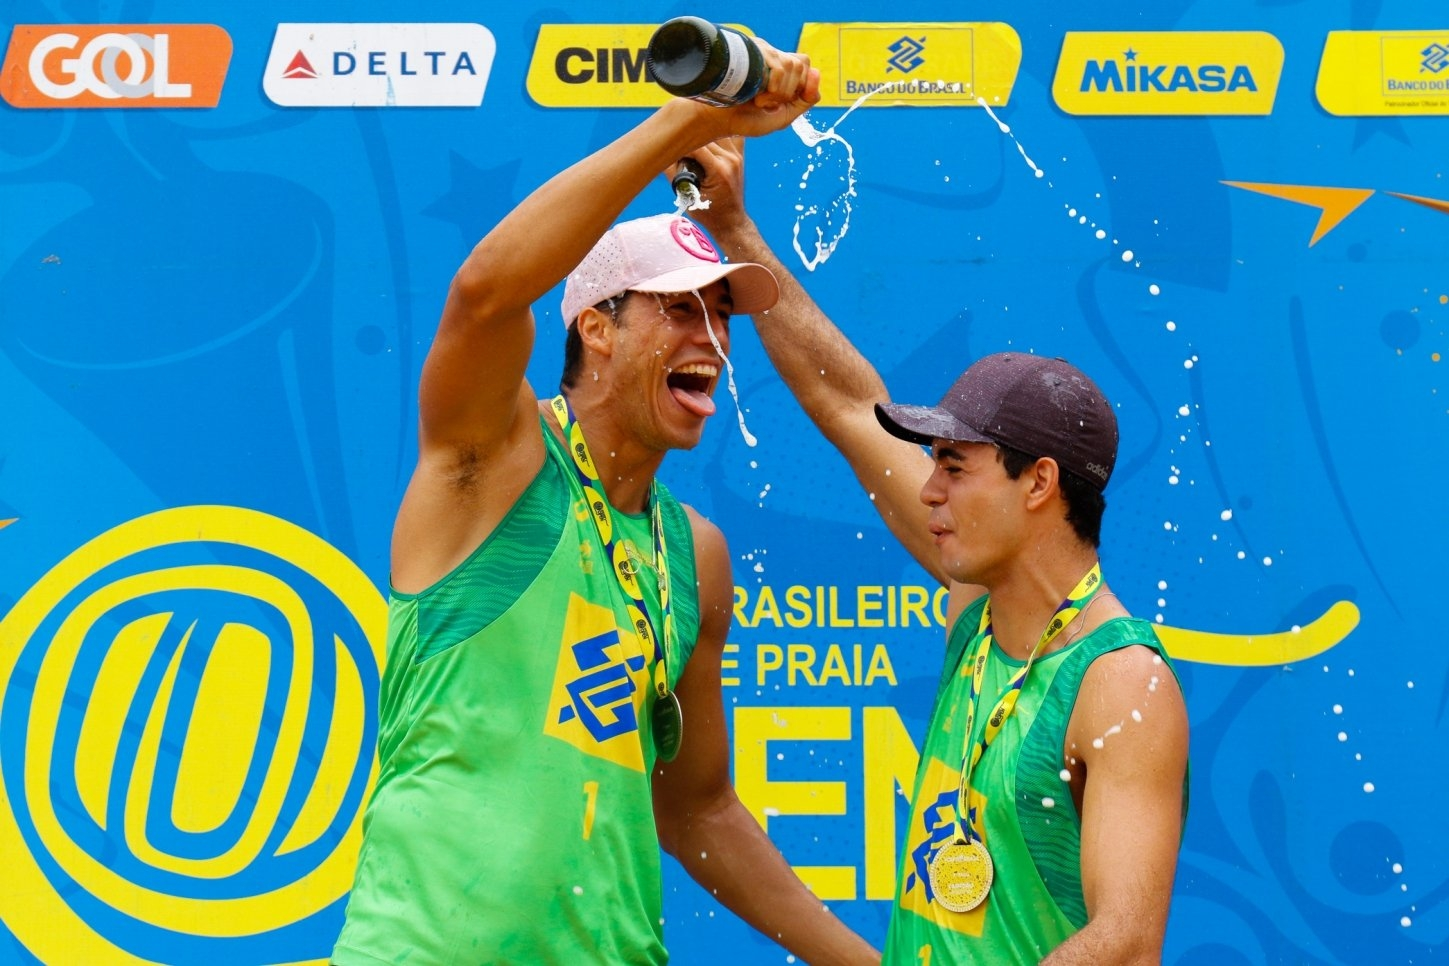 Saymon and Guto celebrate their victory at the podium (Photocredit: CBV)